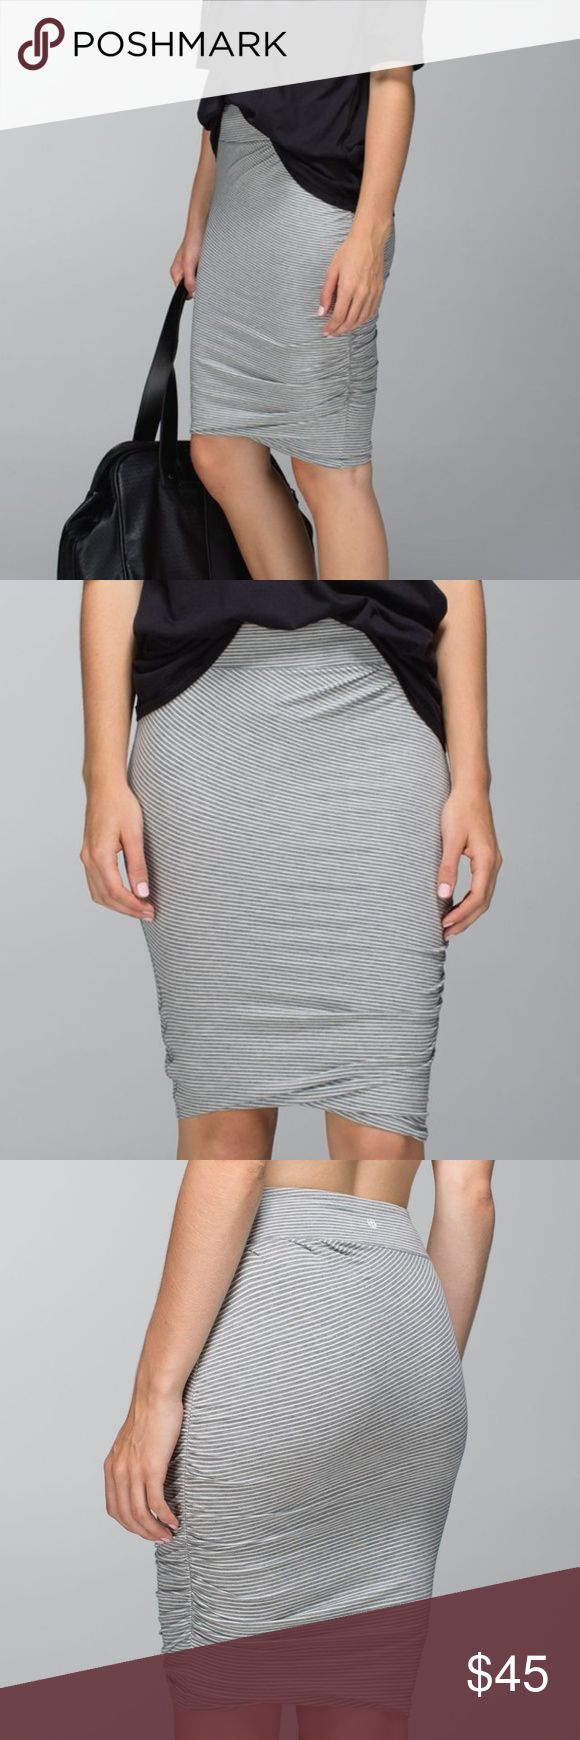 """Lululemon Anytime Skirt Lululemon Anytime Skirt Color """"Hyper Stripe Heathered Medium Grey Ghost"""" Ruching at the hem Slim pencil fit Hidden waistband pocket Minuscule hole on the waistband Body: 70% pima cotton, 24% lyocell seacell, 6% lycra spadex  Measurements (approximate): Waist: 10.5"""" Length: 20.5""""  No trades. Offers welcome! lululemon athletica Skirts Mini"""